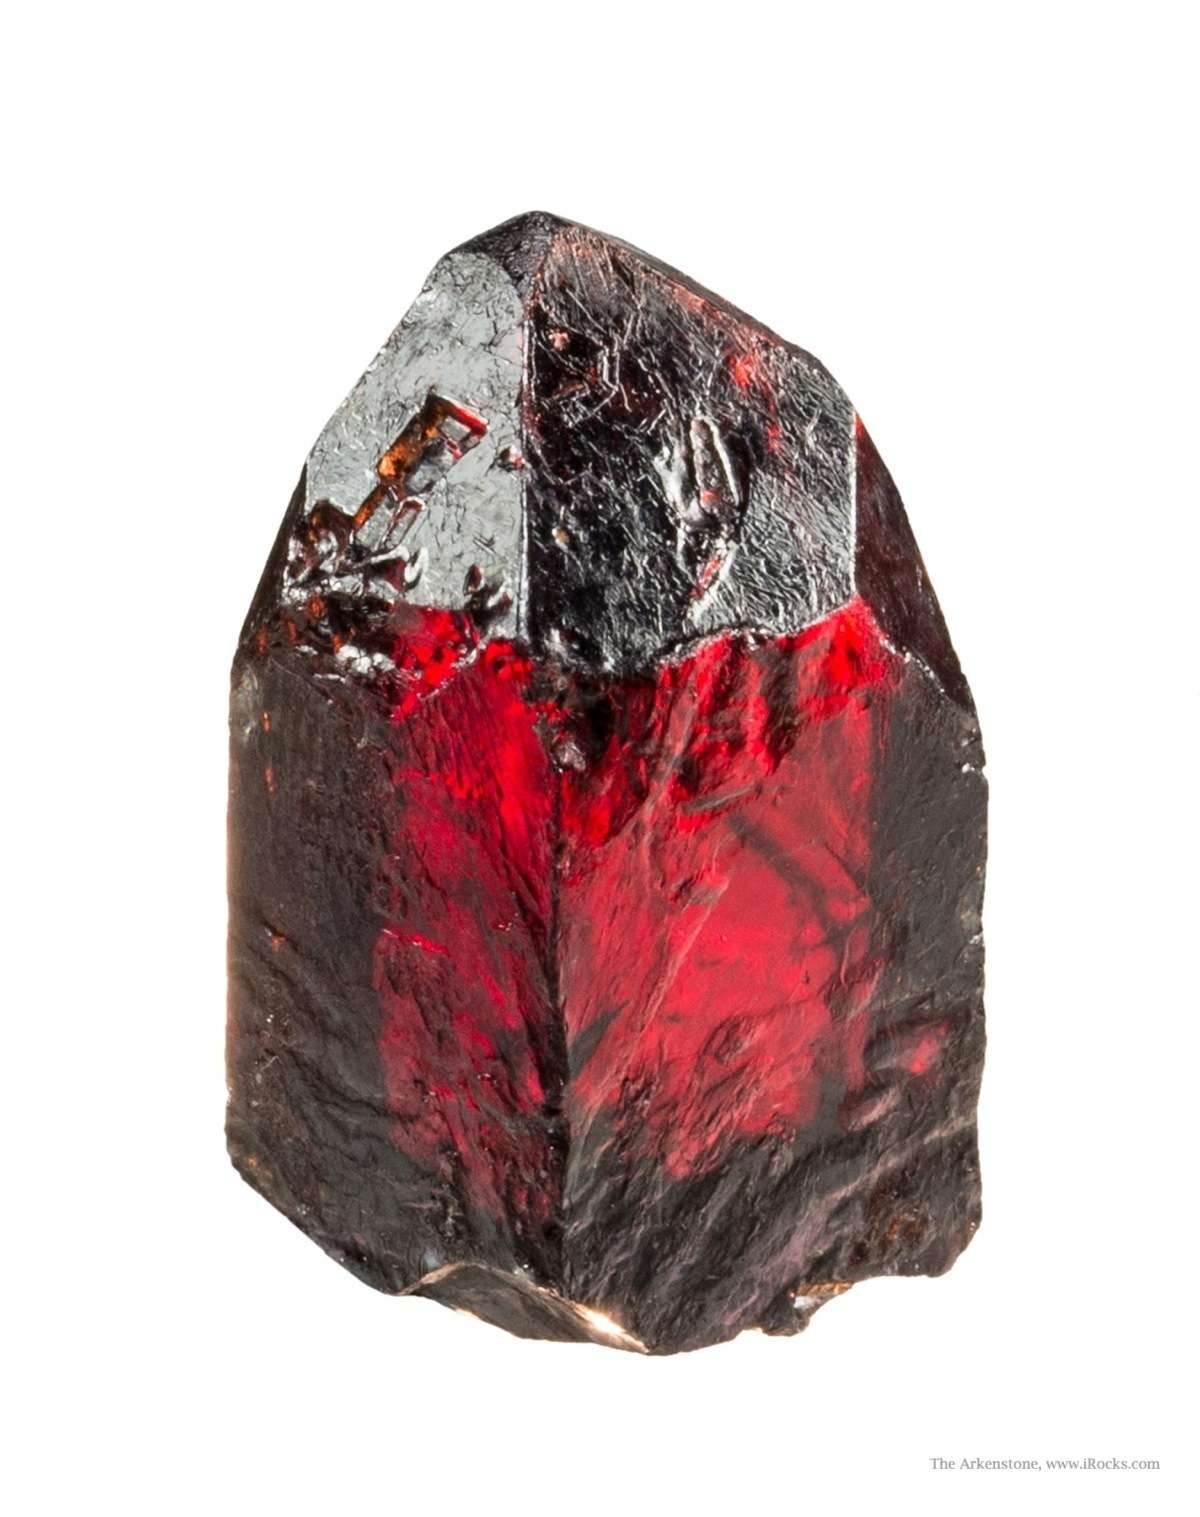 red zircon crystals dating